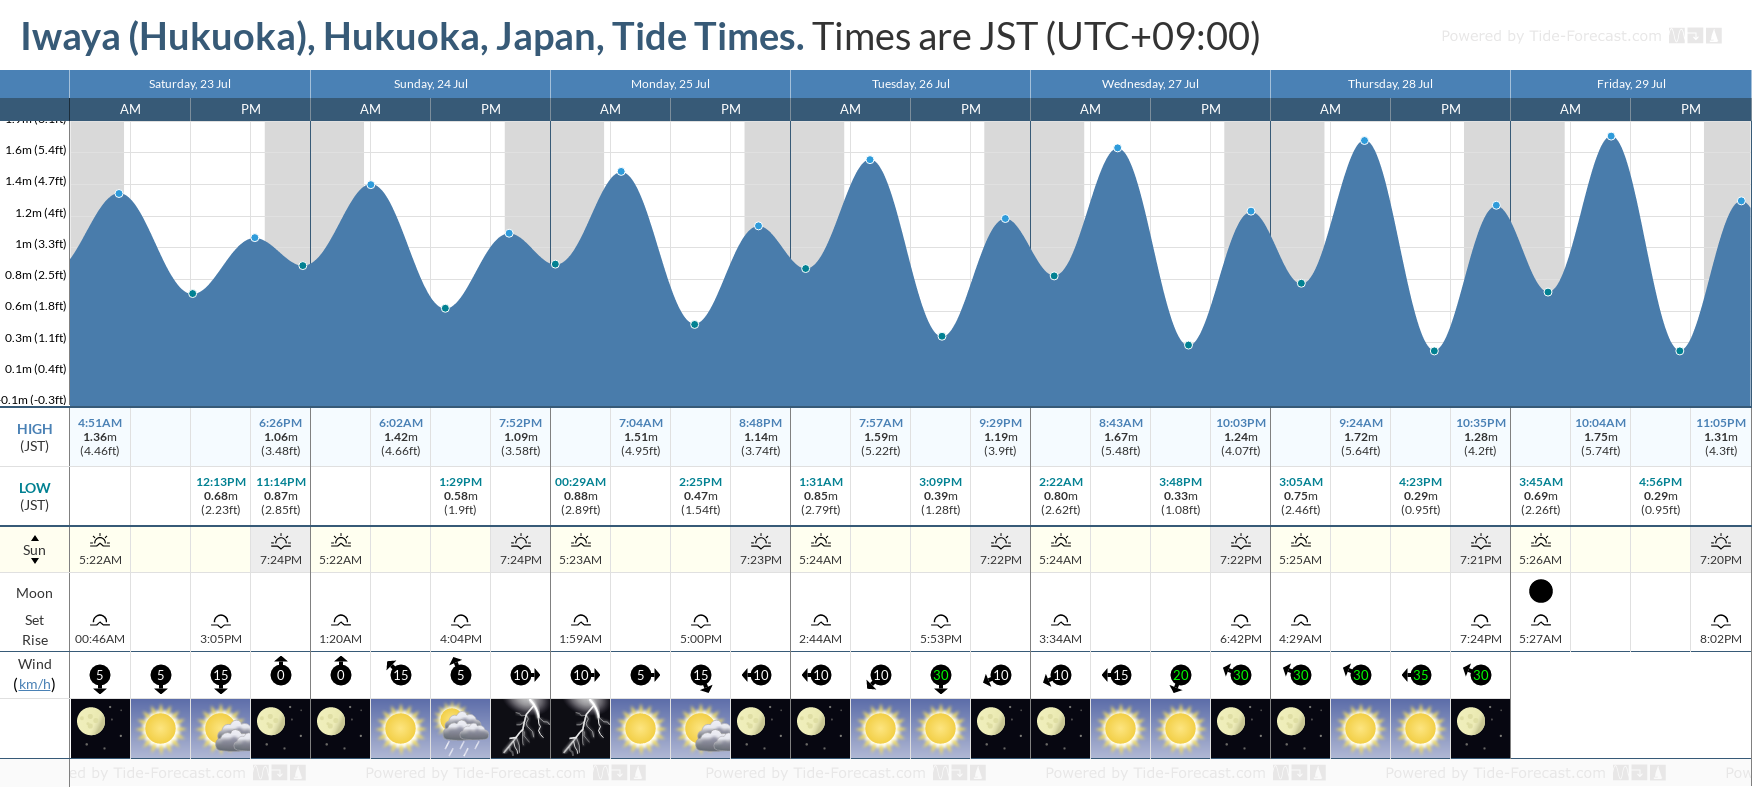 Iwaya (Hukuoka), Hukuoka, Japan Tide Chart including high and low tide tide times for the next 7 days